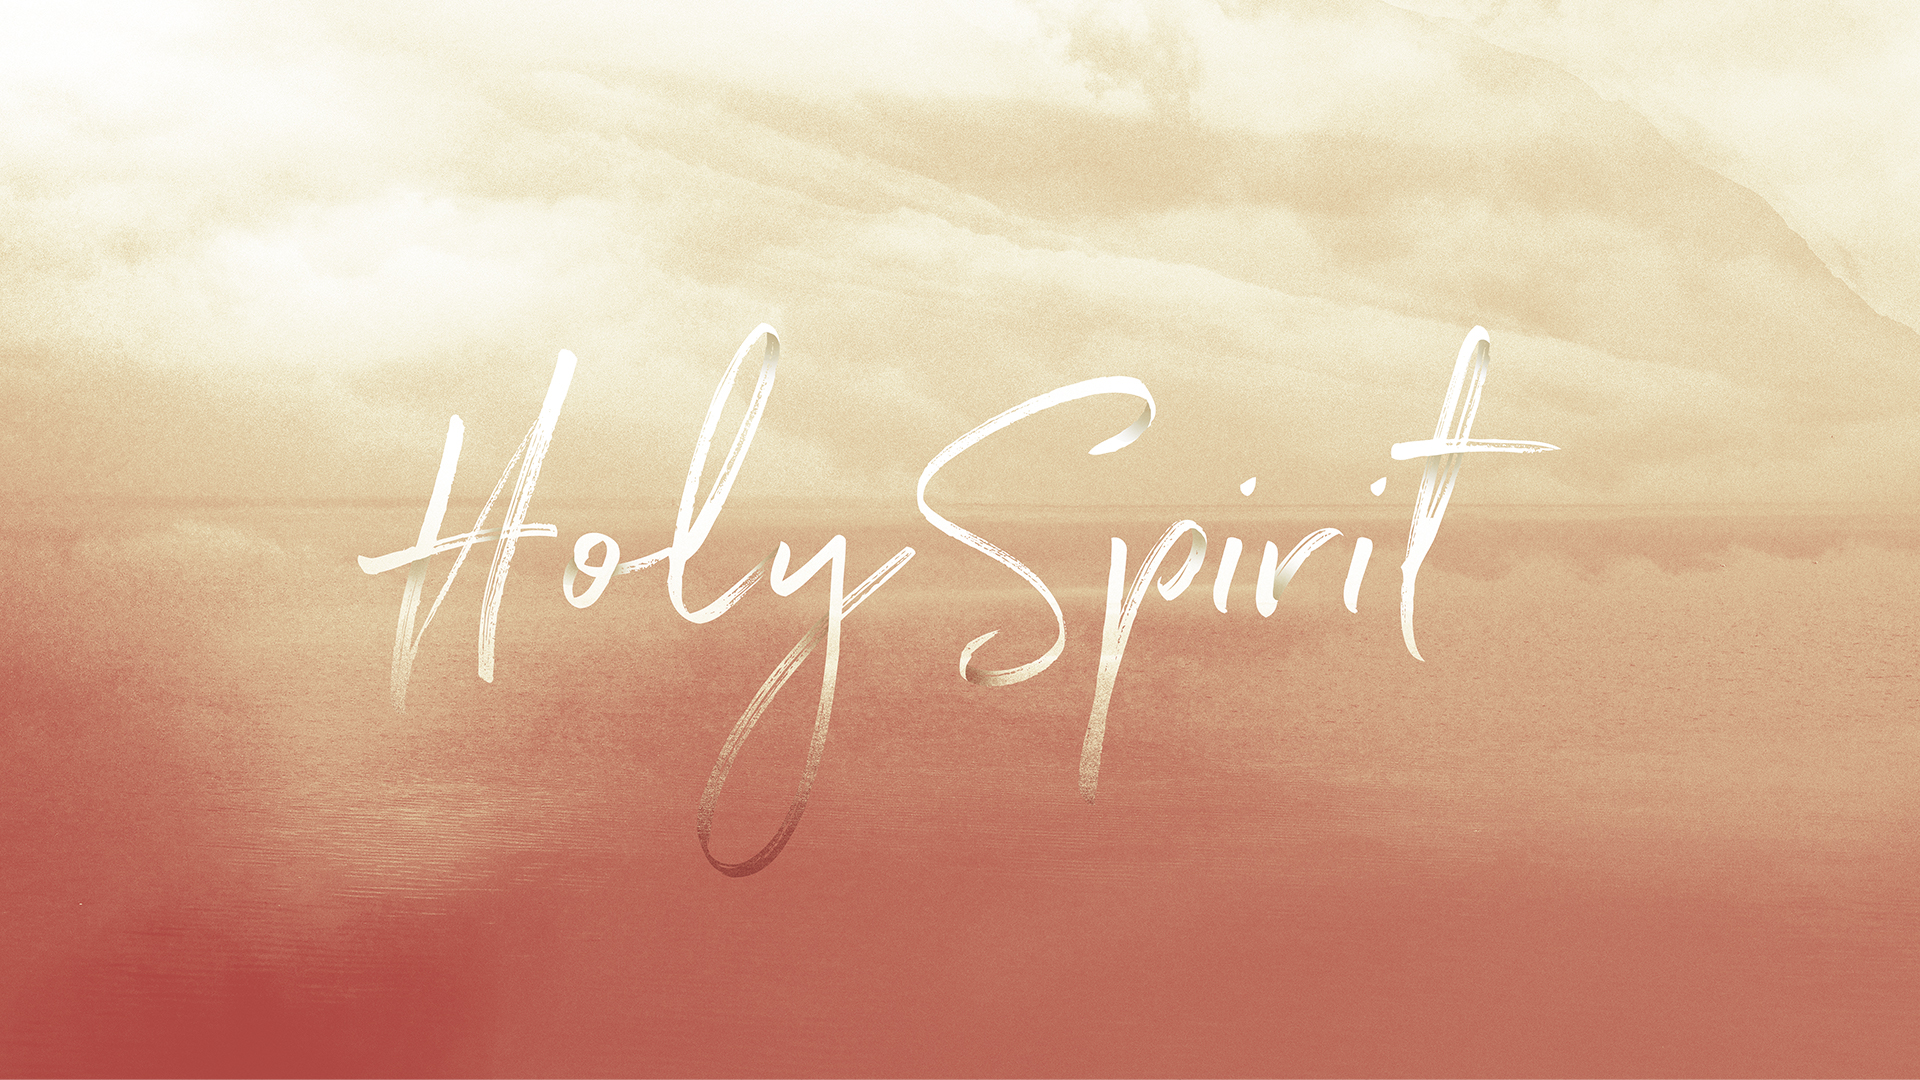 Holy Spirit | Media | Church of the Highlands